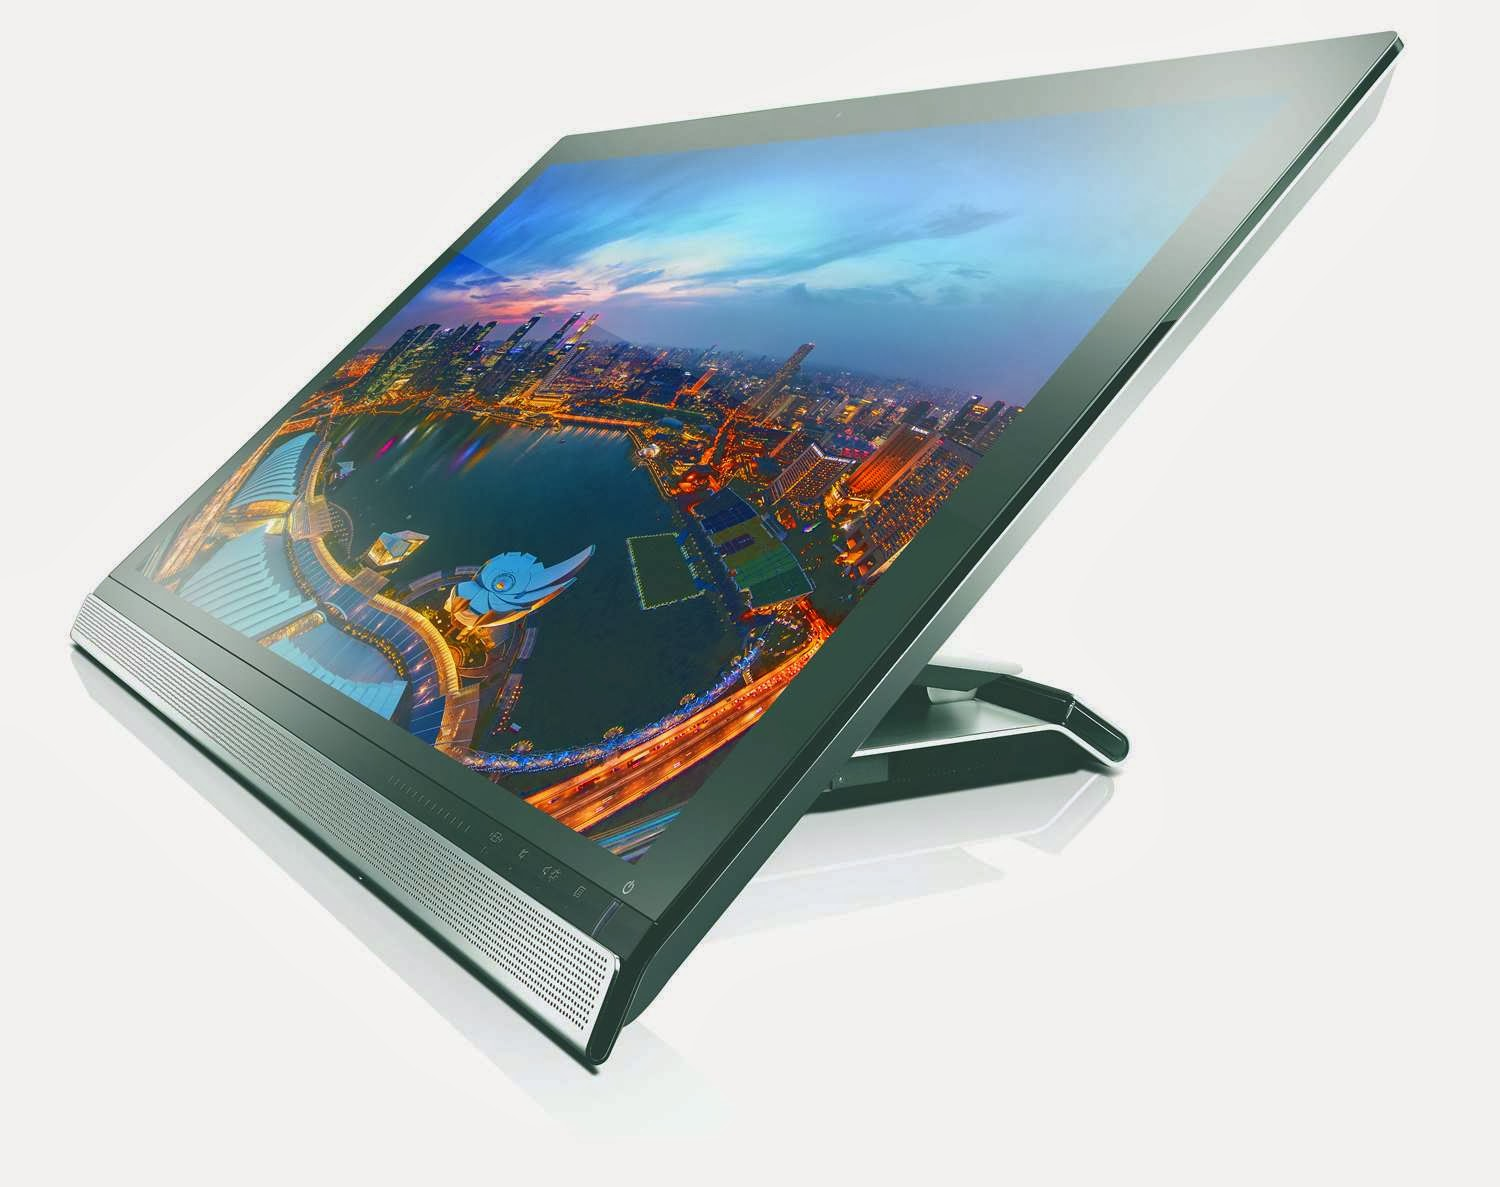 Komputer Android, android, lenovo, all-in-one-pc, komputer terbaru, perangkat android terbaru